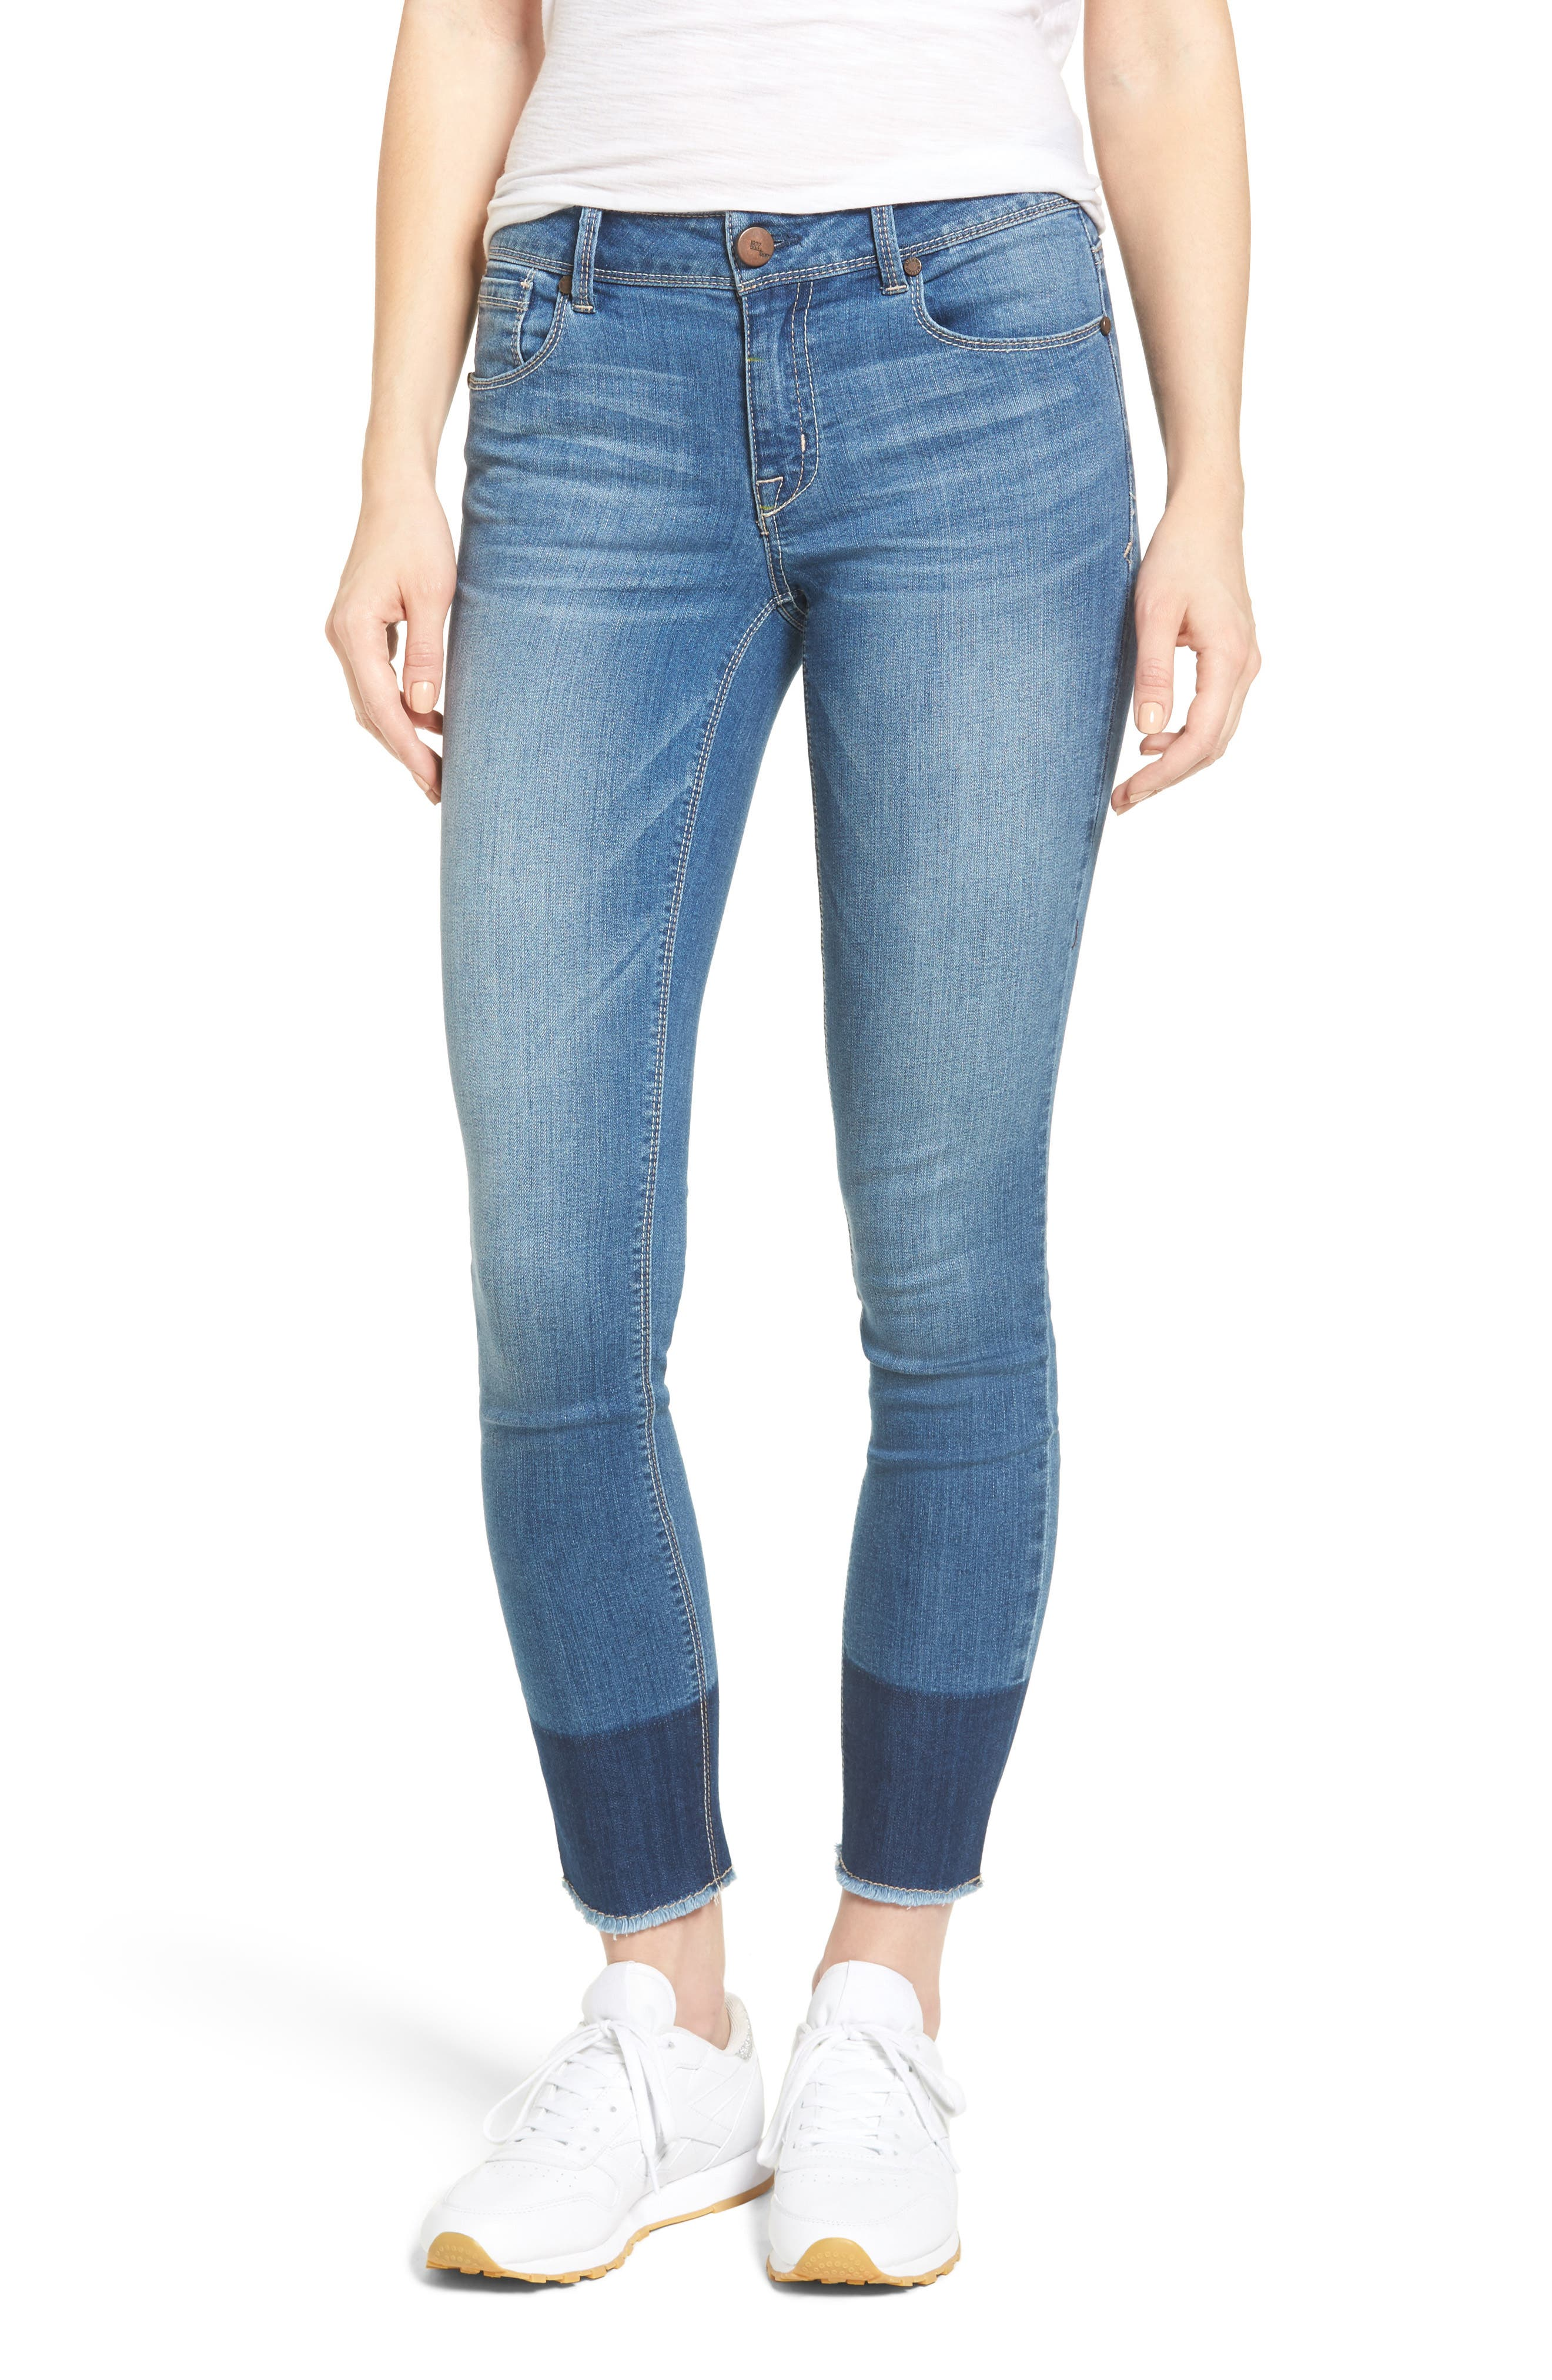 1822 Denim Two-Tone Skinny Jeans (Lexington)